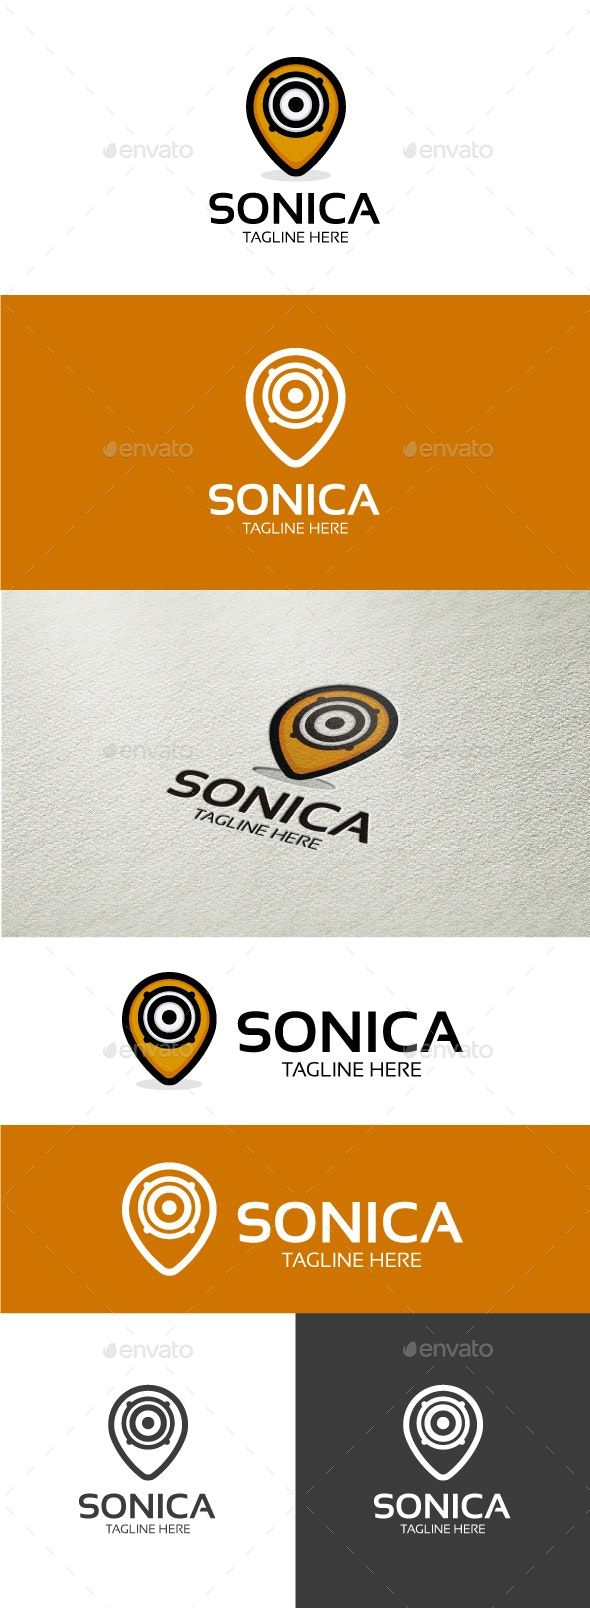 Sonica Symbol Logo Design Template created by